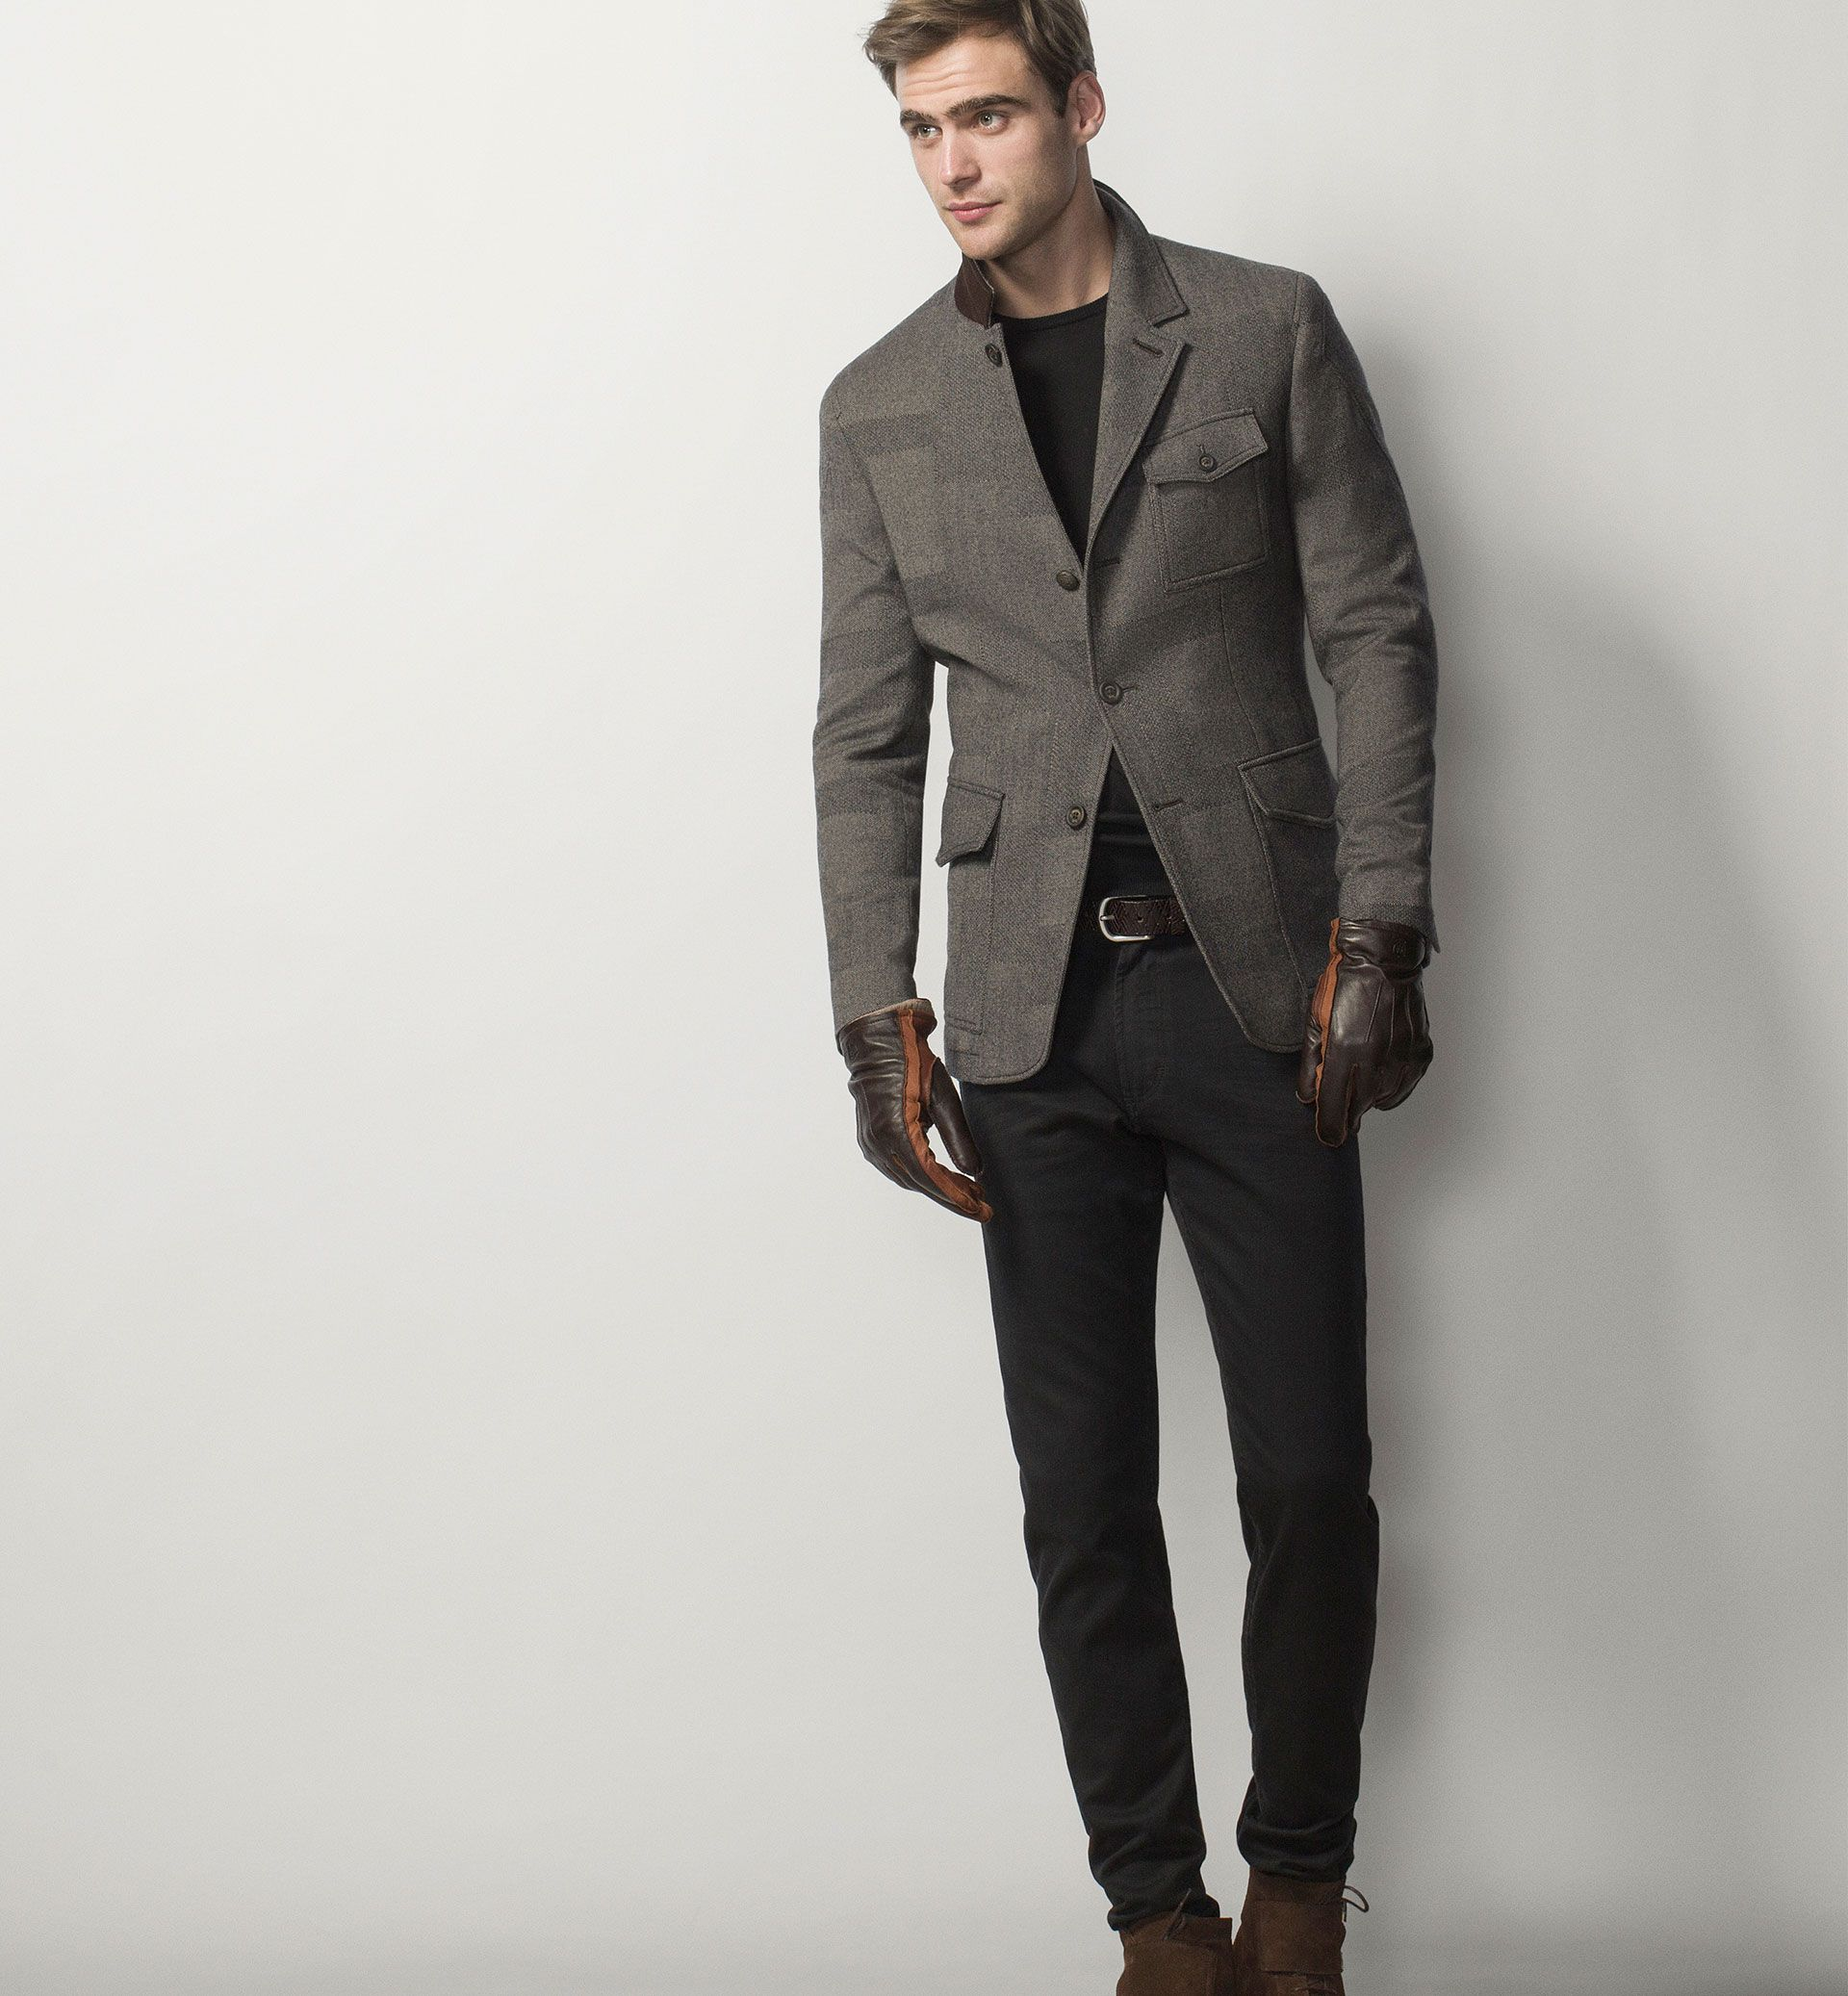 The most elegant styles at Massimo Dutti.